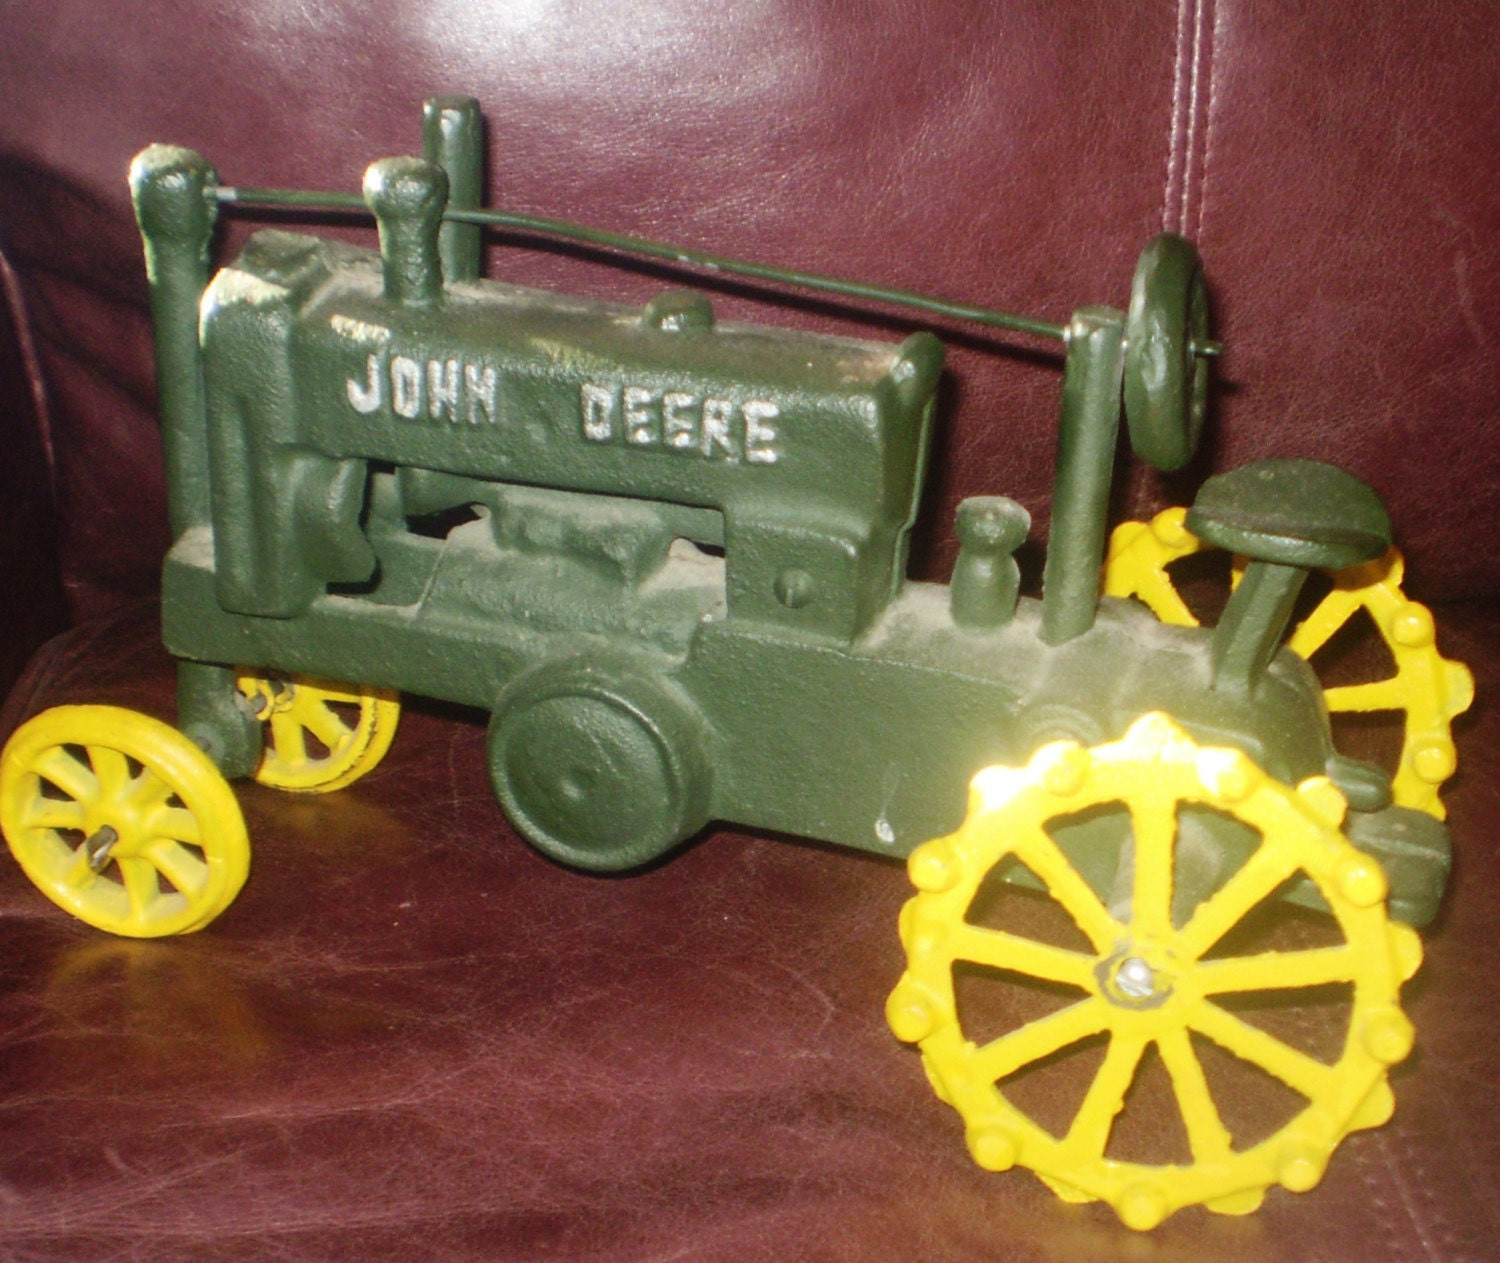 Collectors Vintage John Deere Tractors : Antique vintage cast iron john deere tractor by